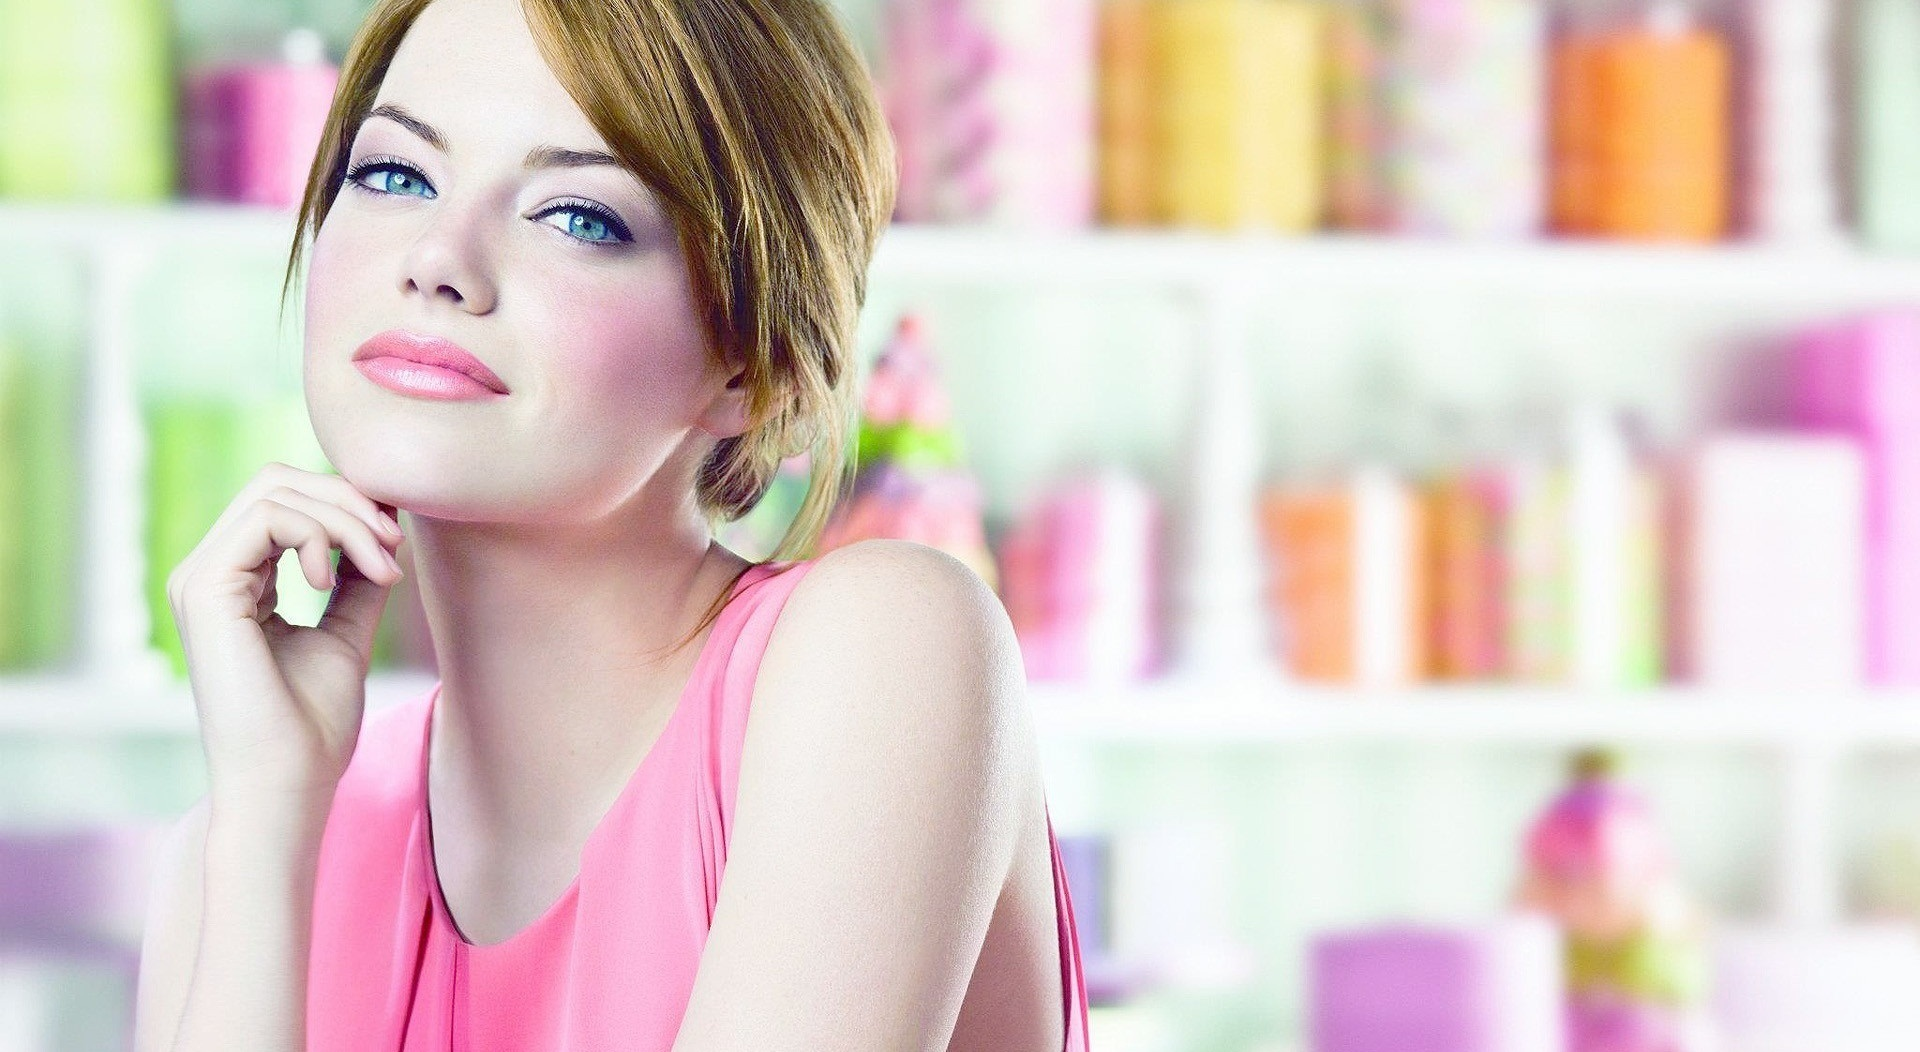 hd emma stone wonderful thinking face look still desktop free background mobile wallpaper